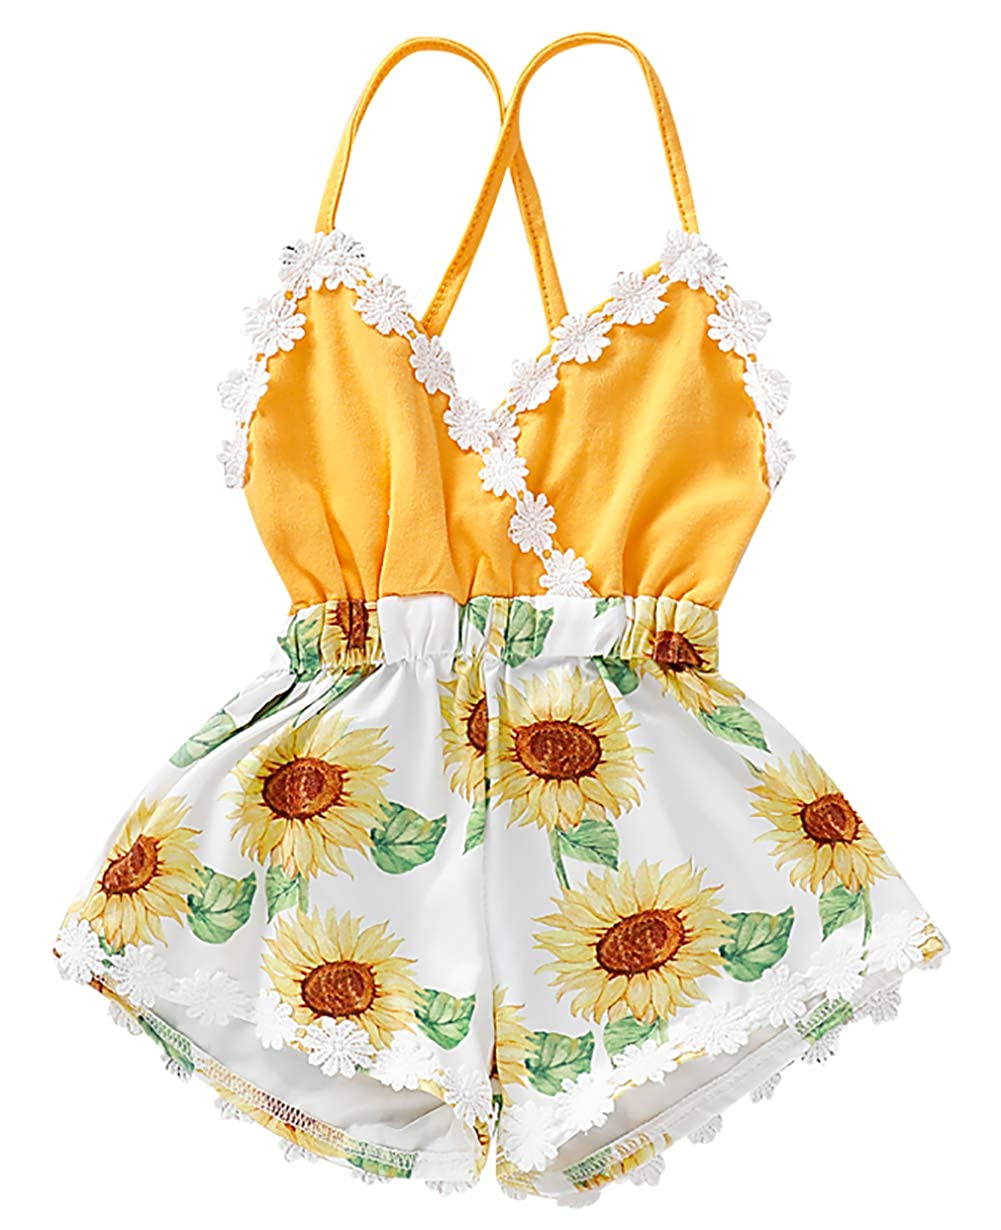 KIDDAD Toddler Baby Girl Cute Sunflower Print Romper Strap Lace Trim Backless Bodysuit Jumpsuit Outfits Clothes